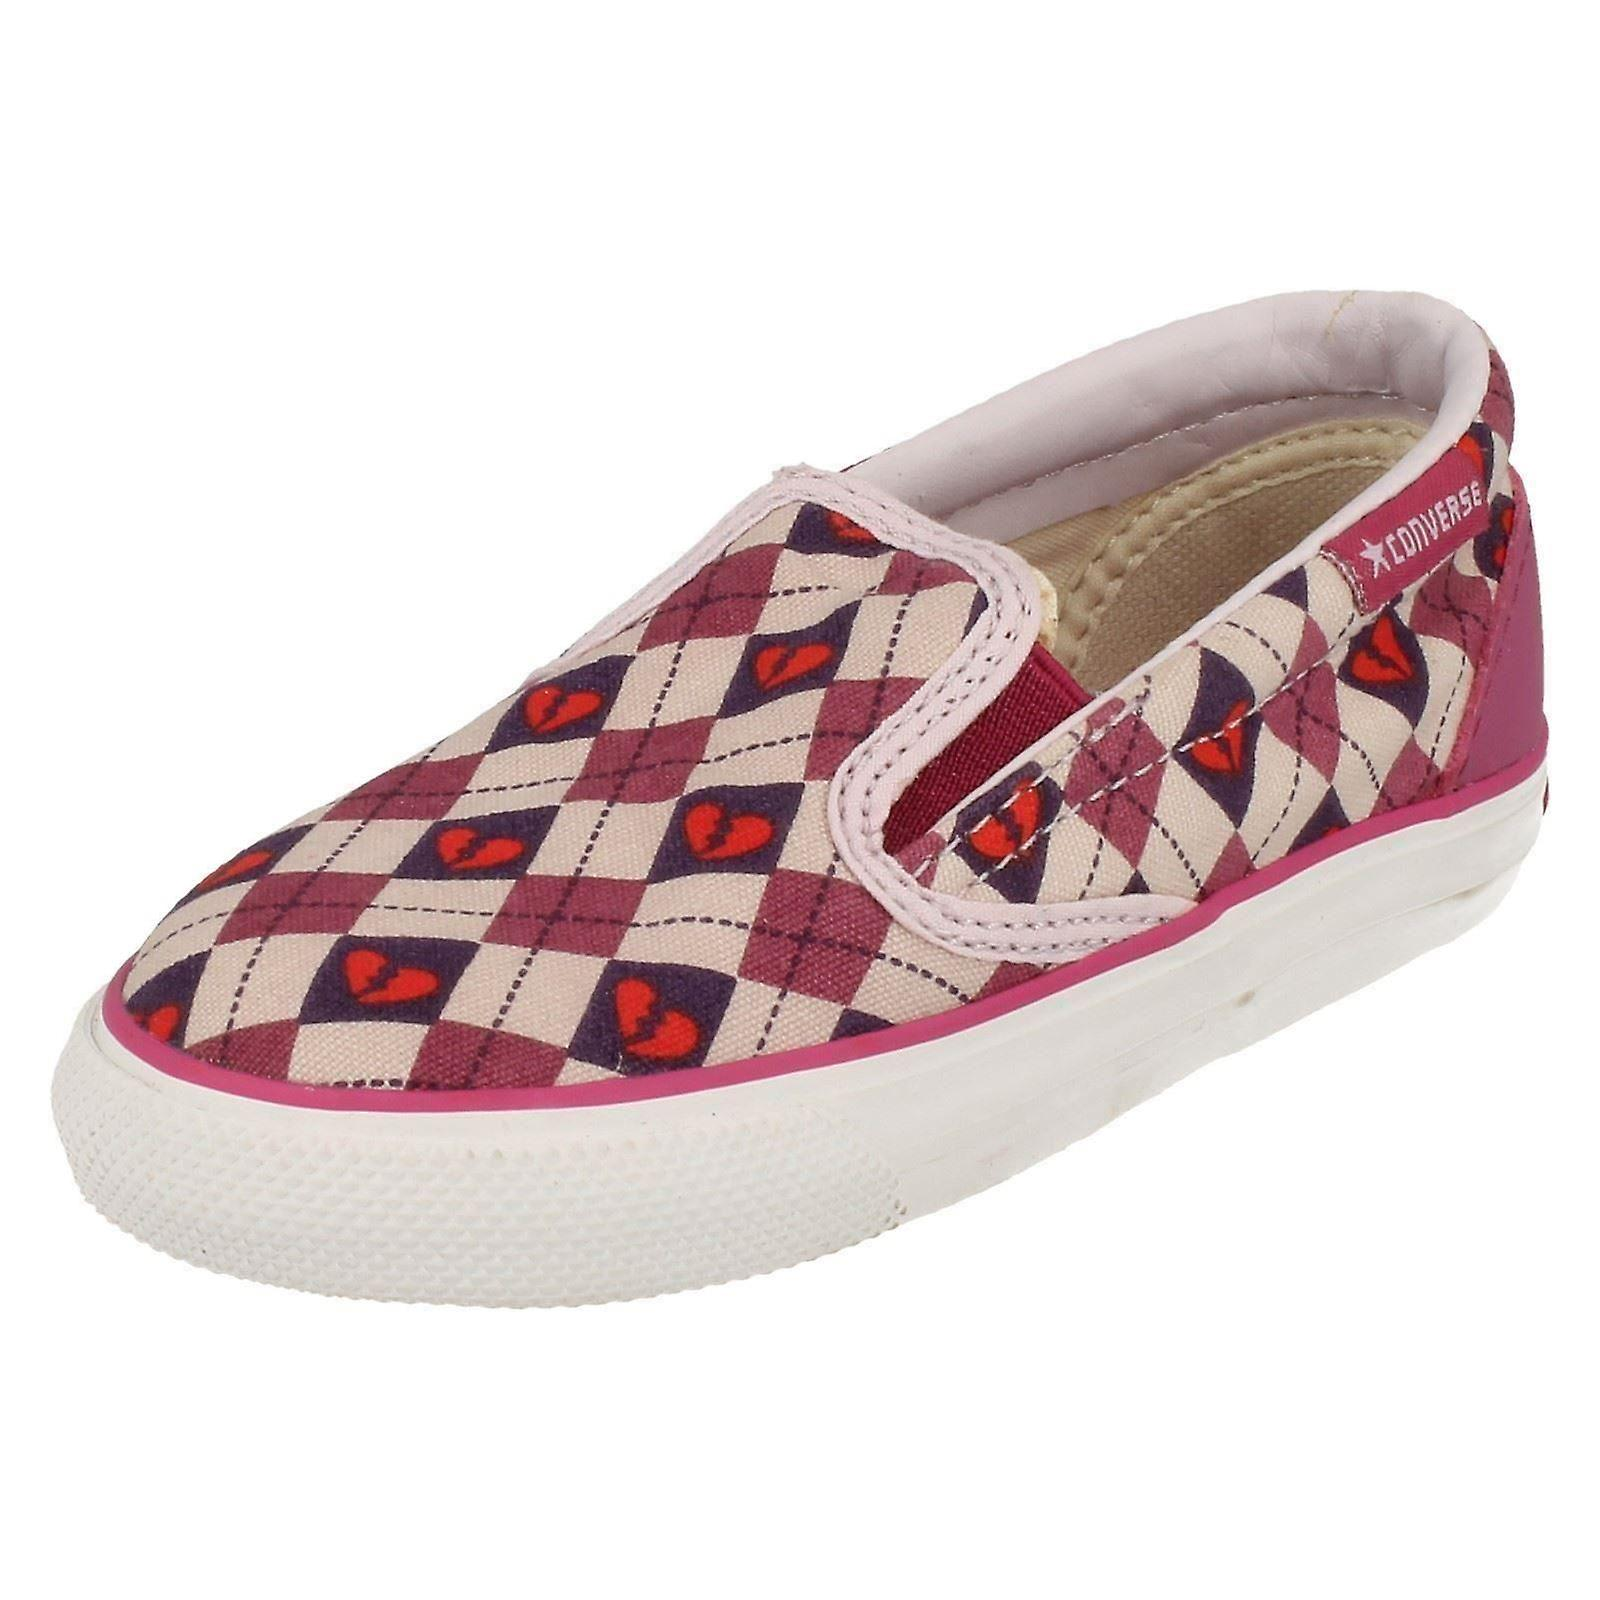 Girls Converse Slip On Shoes quality:Men's/Women's Inft Skid Grip Ev:good quality:Men's/Women's Shoes 654ac1